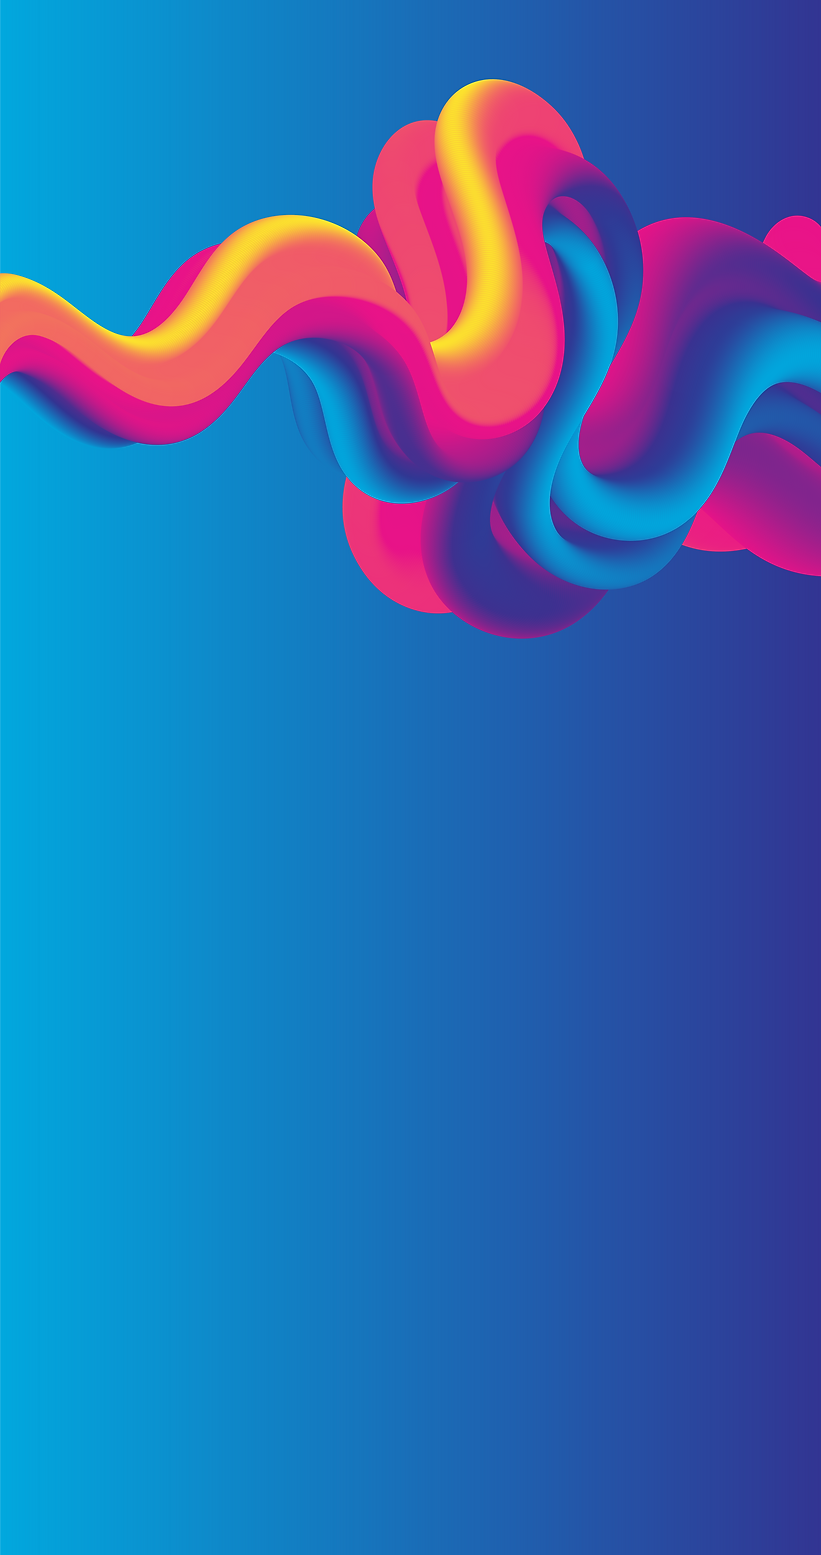 background-342-08.png